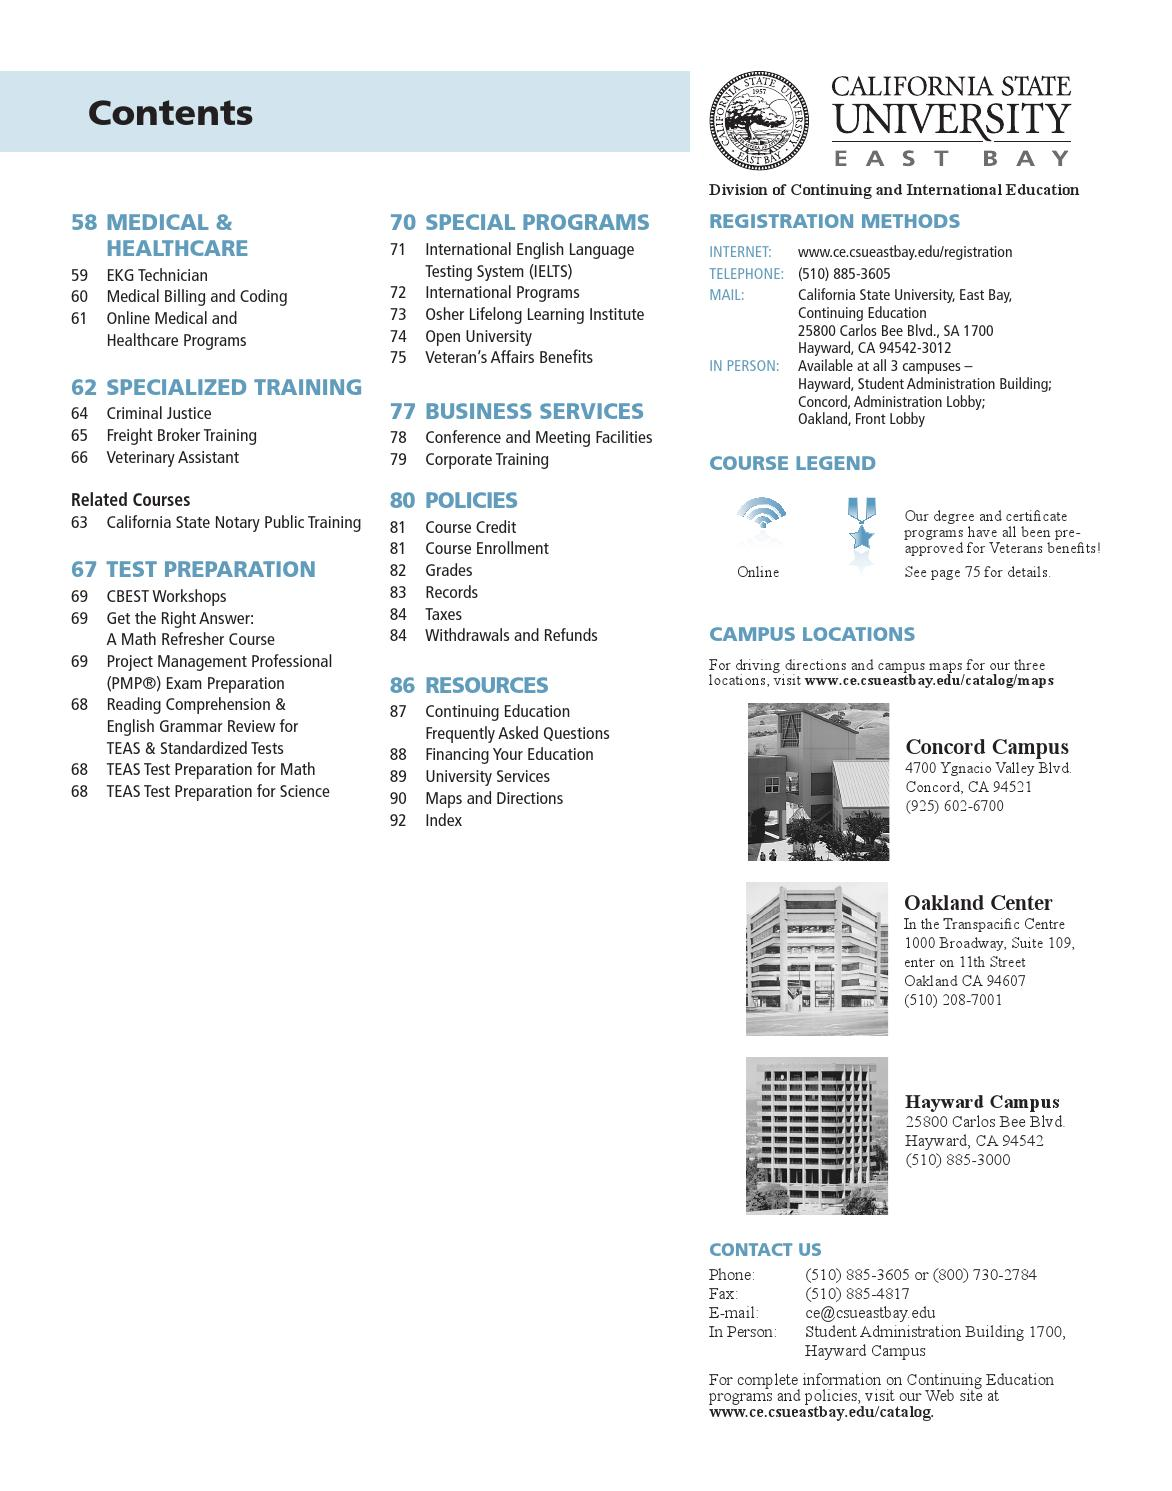 Csueb Concord Campus Map.Cal State East Bay Continuing Education Annual Catalog 2013 14 By